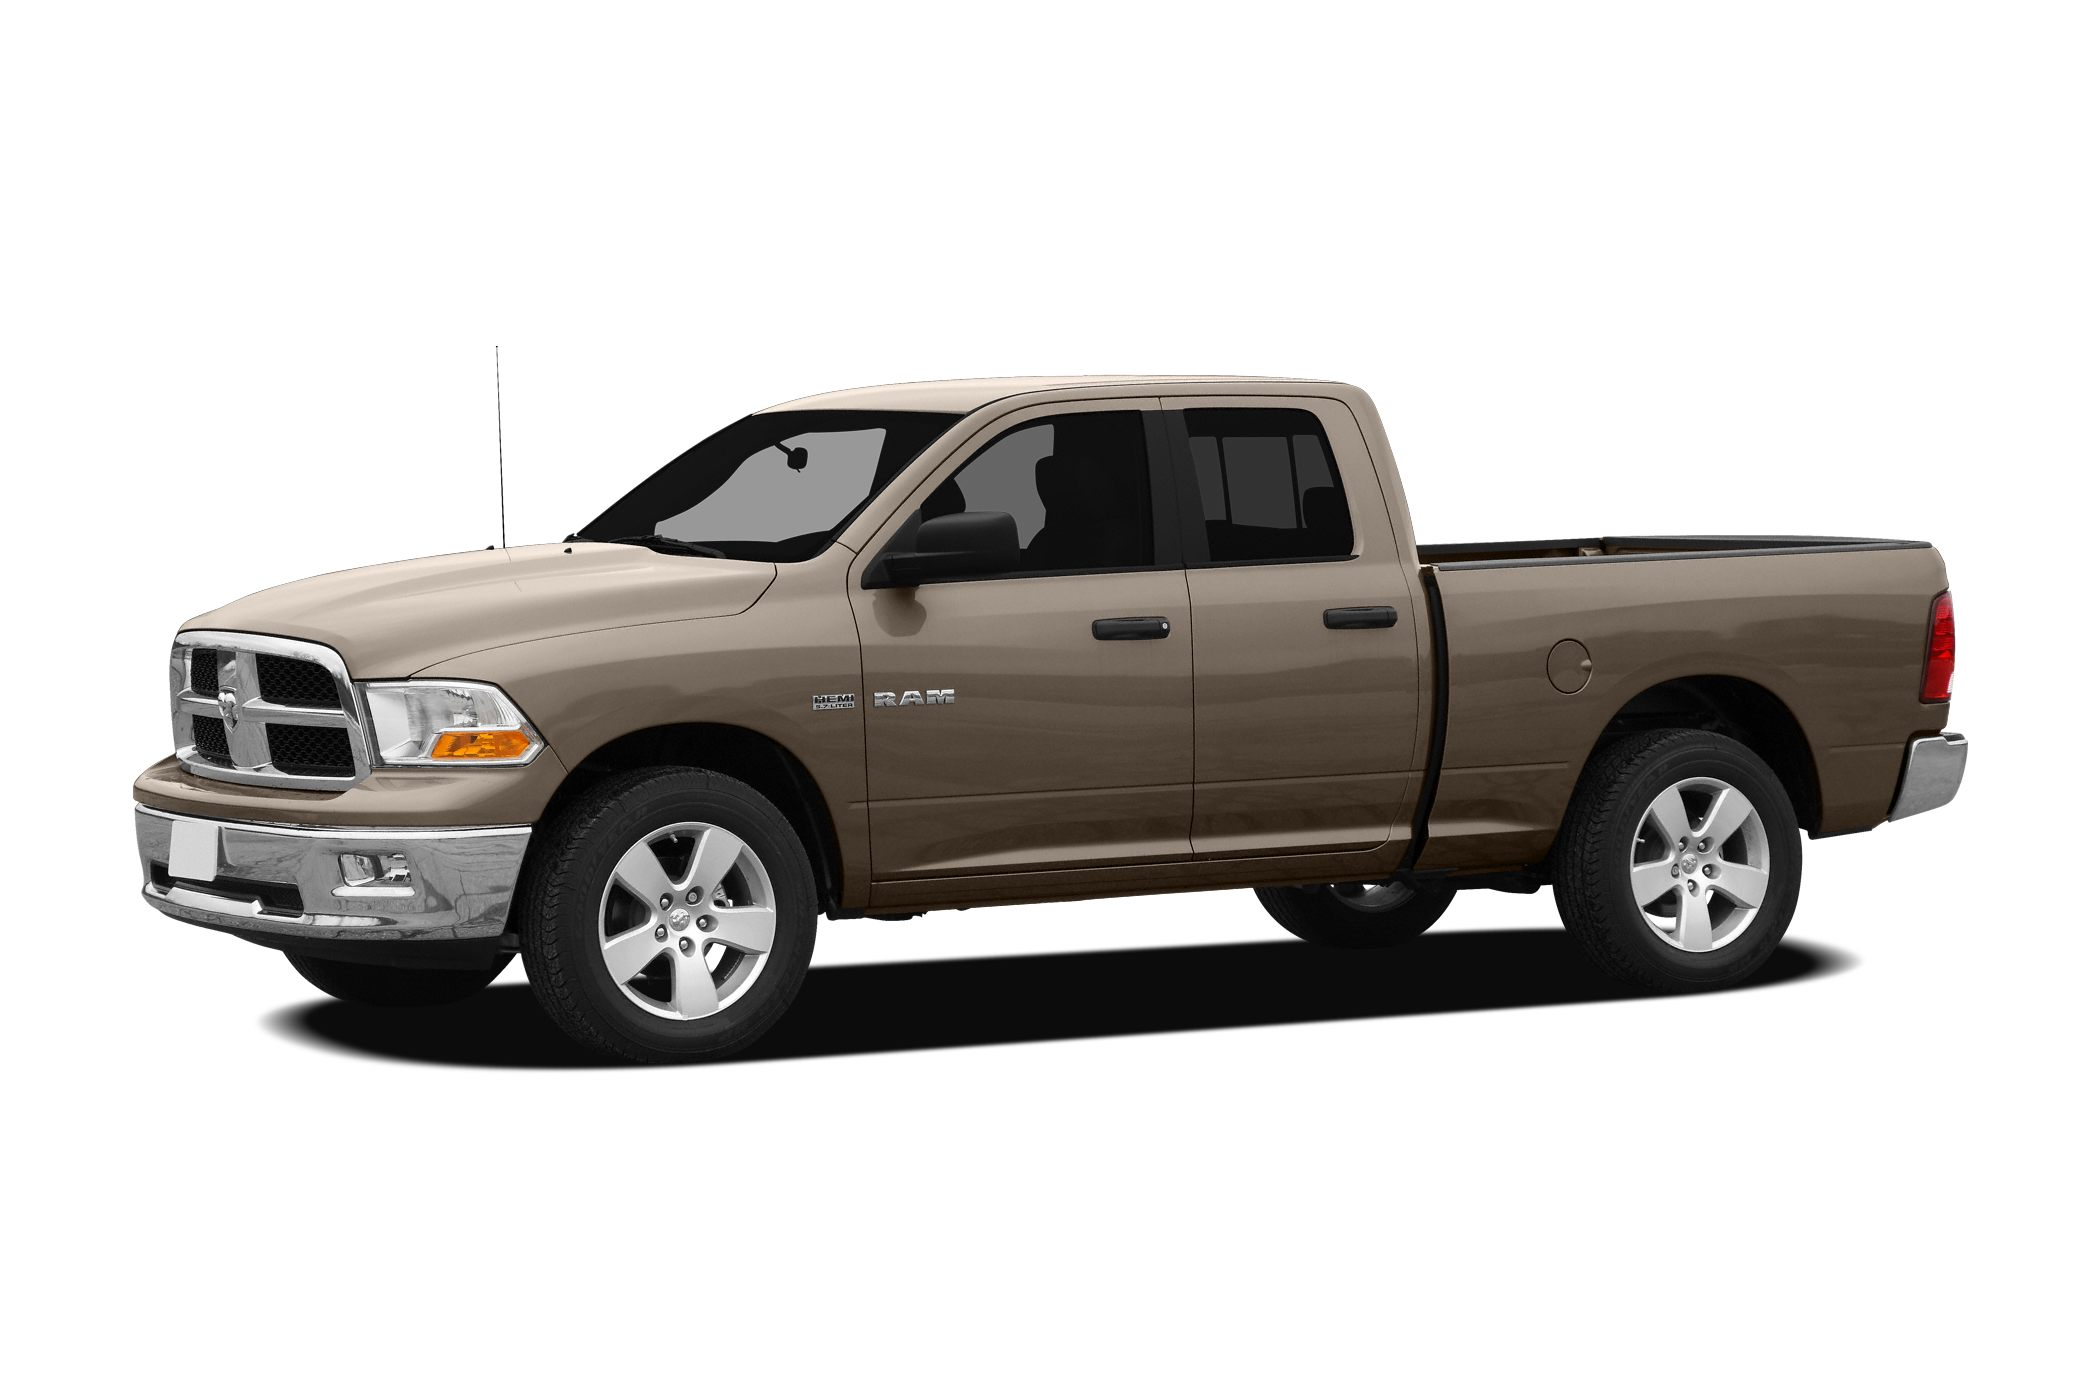 2009 Dodge Ram 1500 SLT Certifed by CARFAX - NO ACCIDENTS GREEN TAG SPECIAL 110 PT INSPECTION